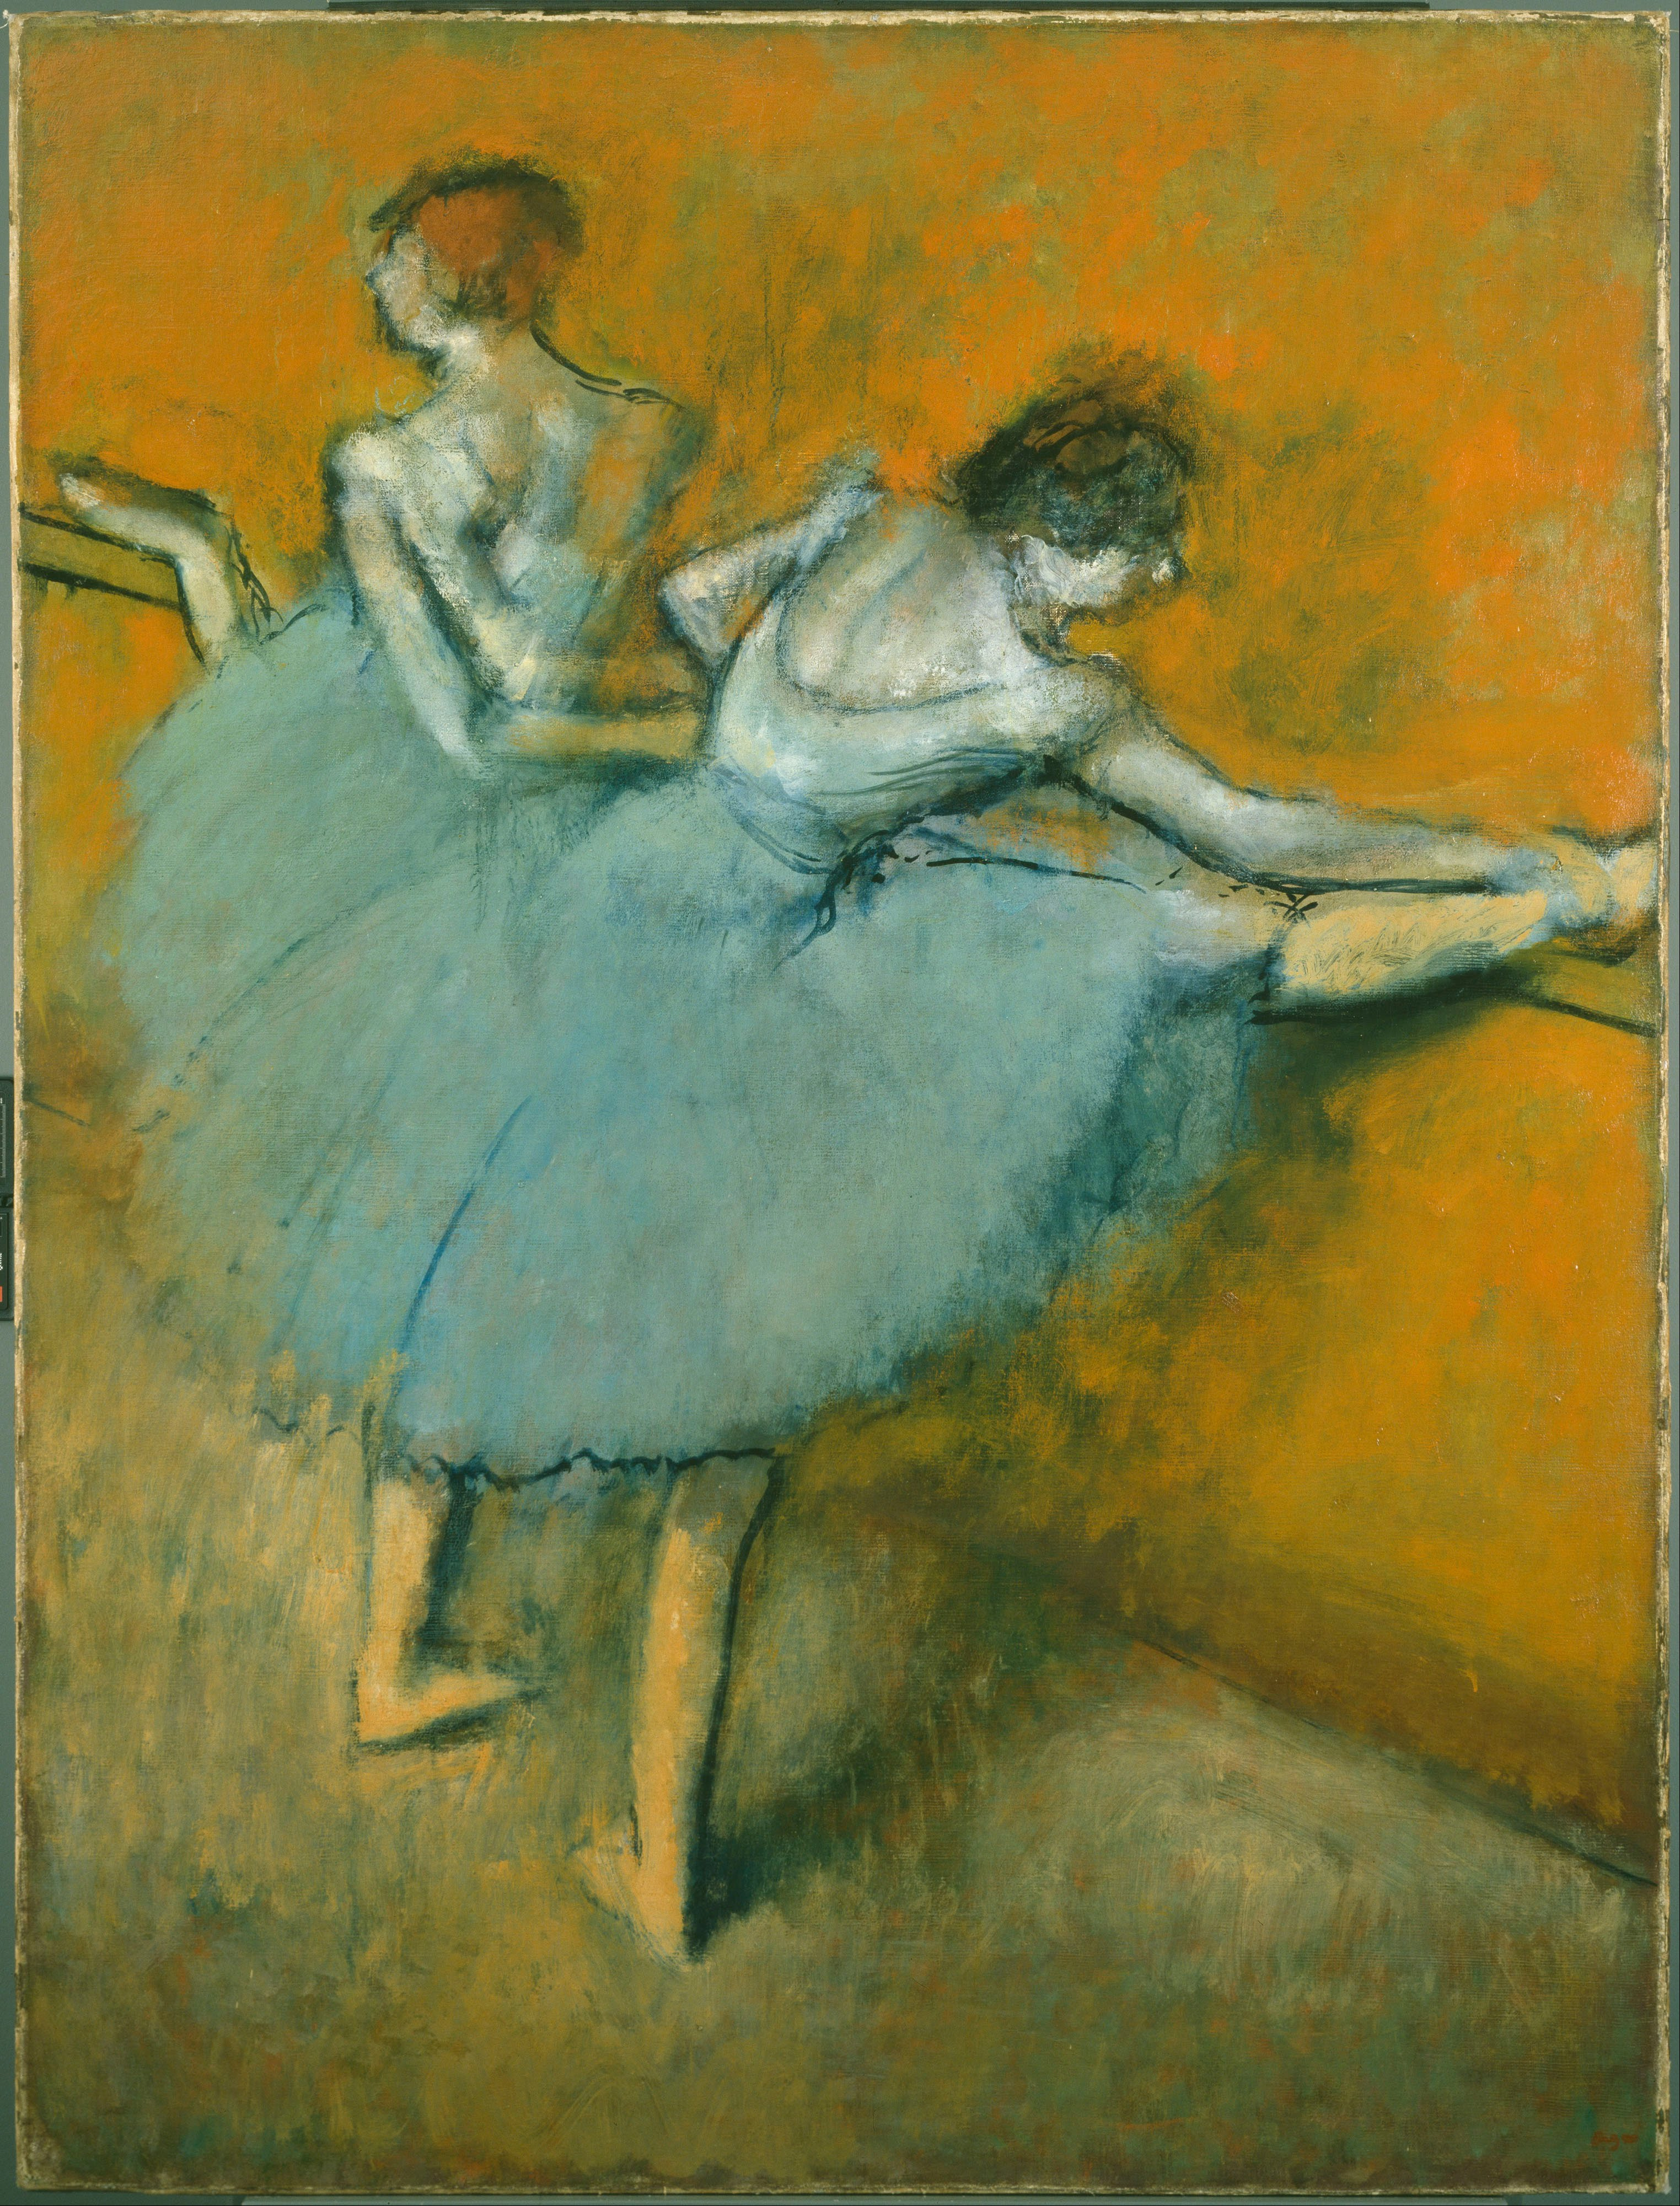 edgar_degas_-_dancers_at_the_barre_-_google_art_project